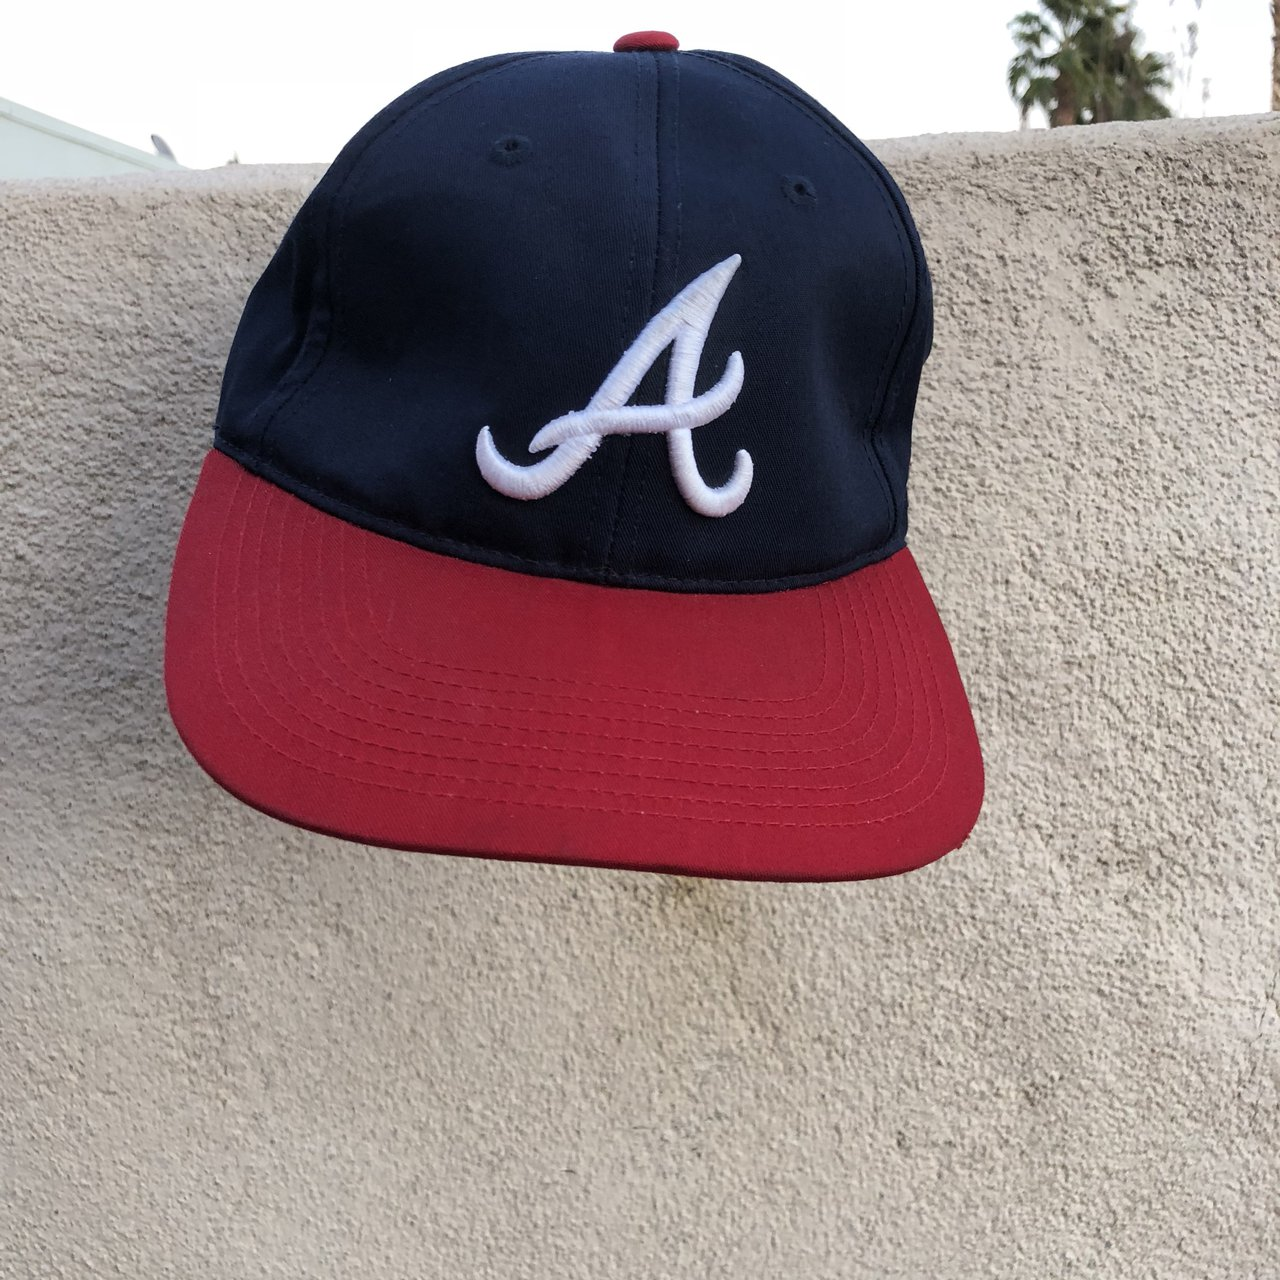 100% authentic mlb Velcro strap hat 🧢 -Navy blue with Red - Depop 103882a07